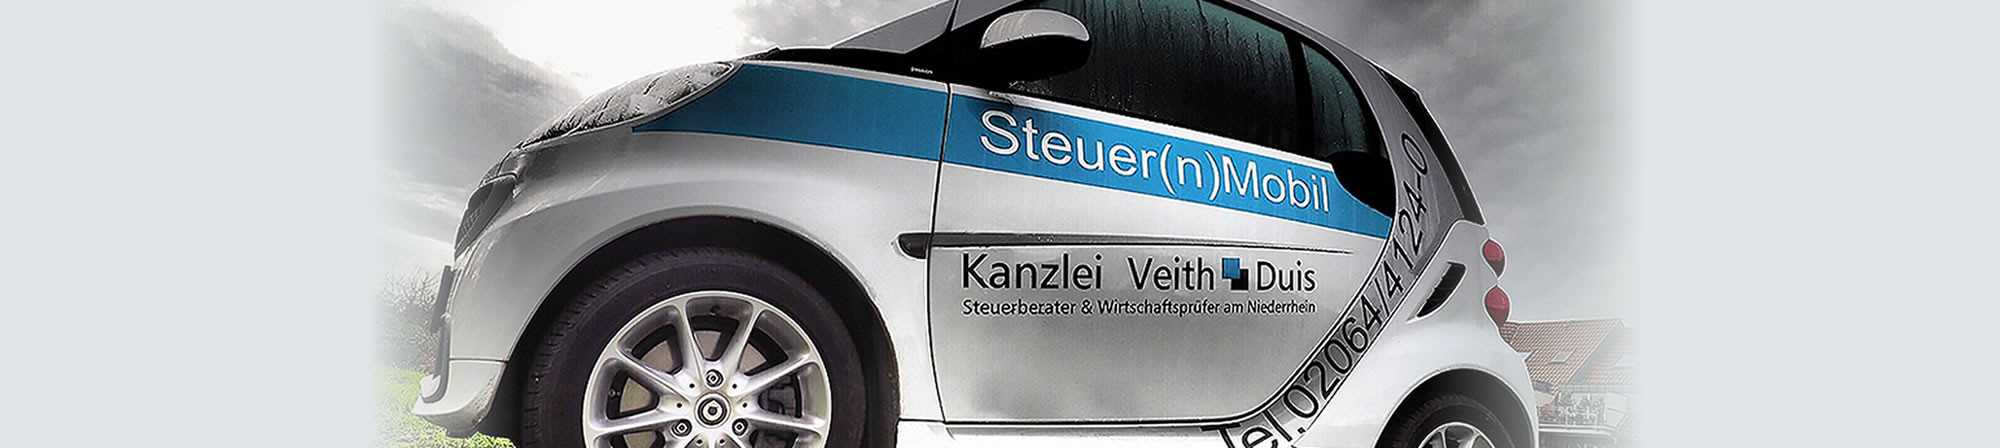 Steuer-Mobil